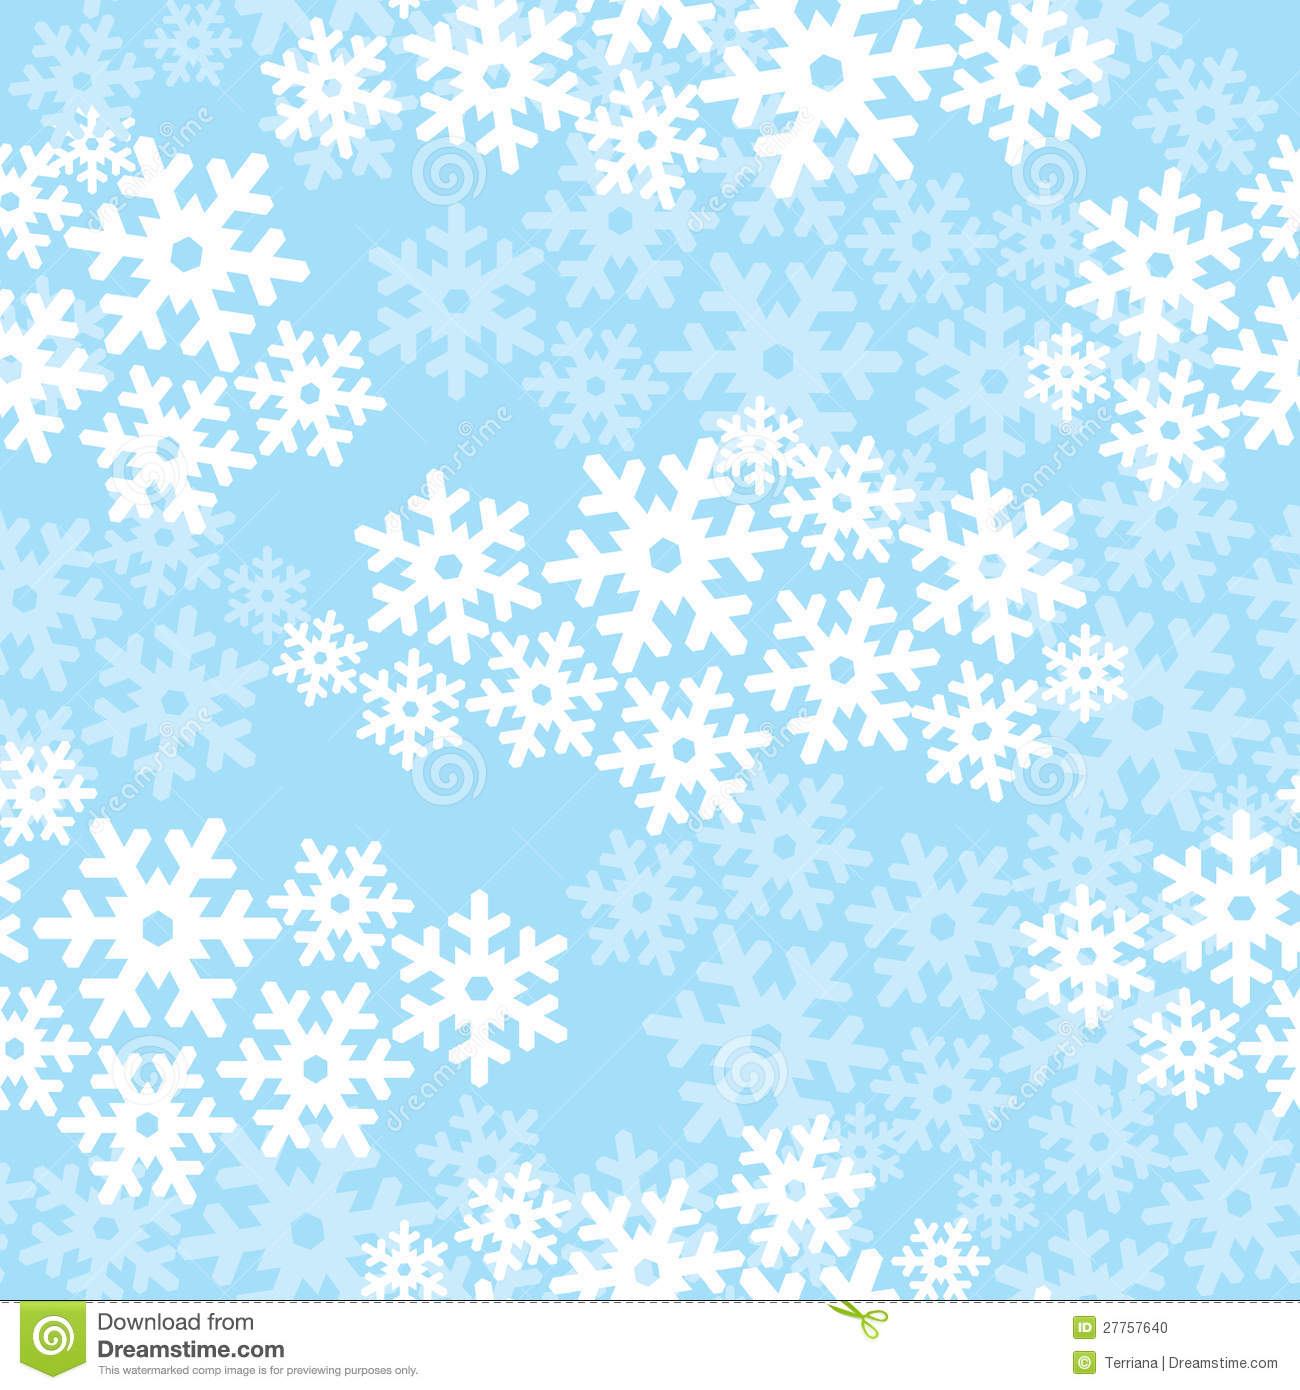 Snowflakes Seamless Christmas Pattern Stock Photo - Image ...